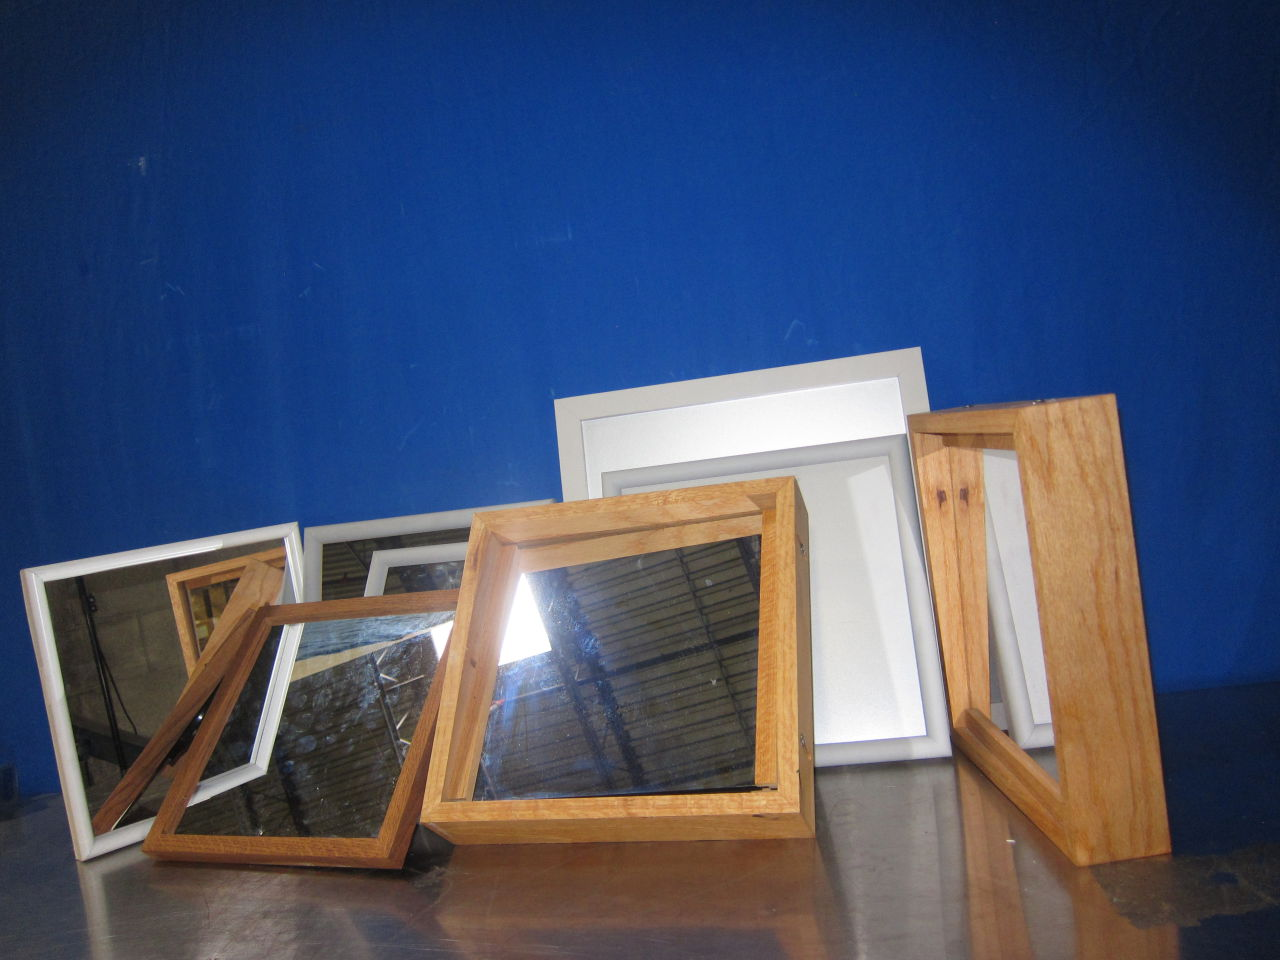 Lot of mirrors - Lot of 8